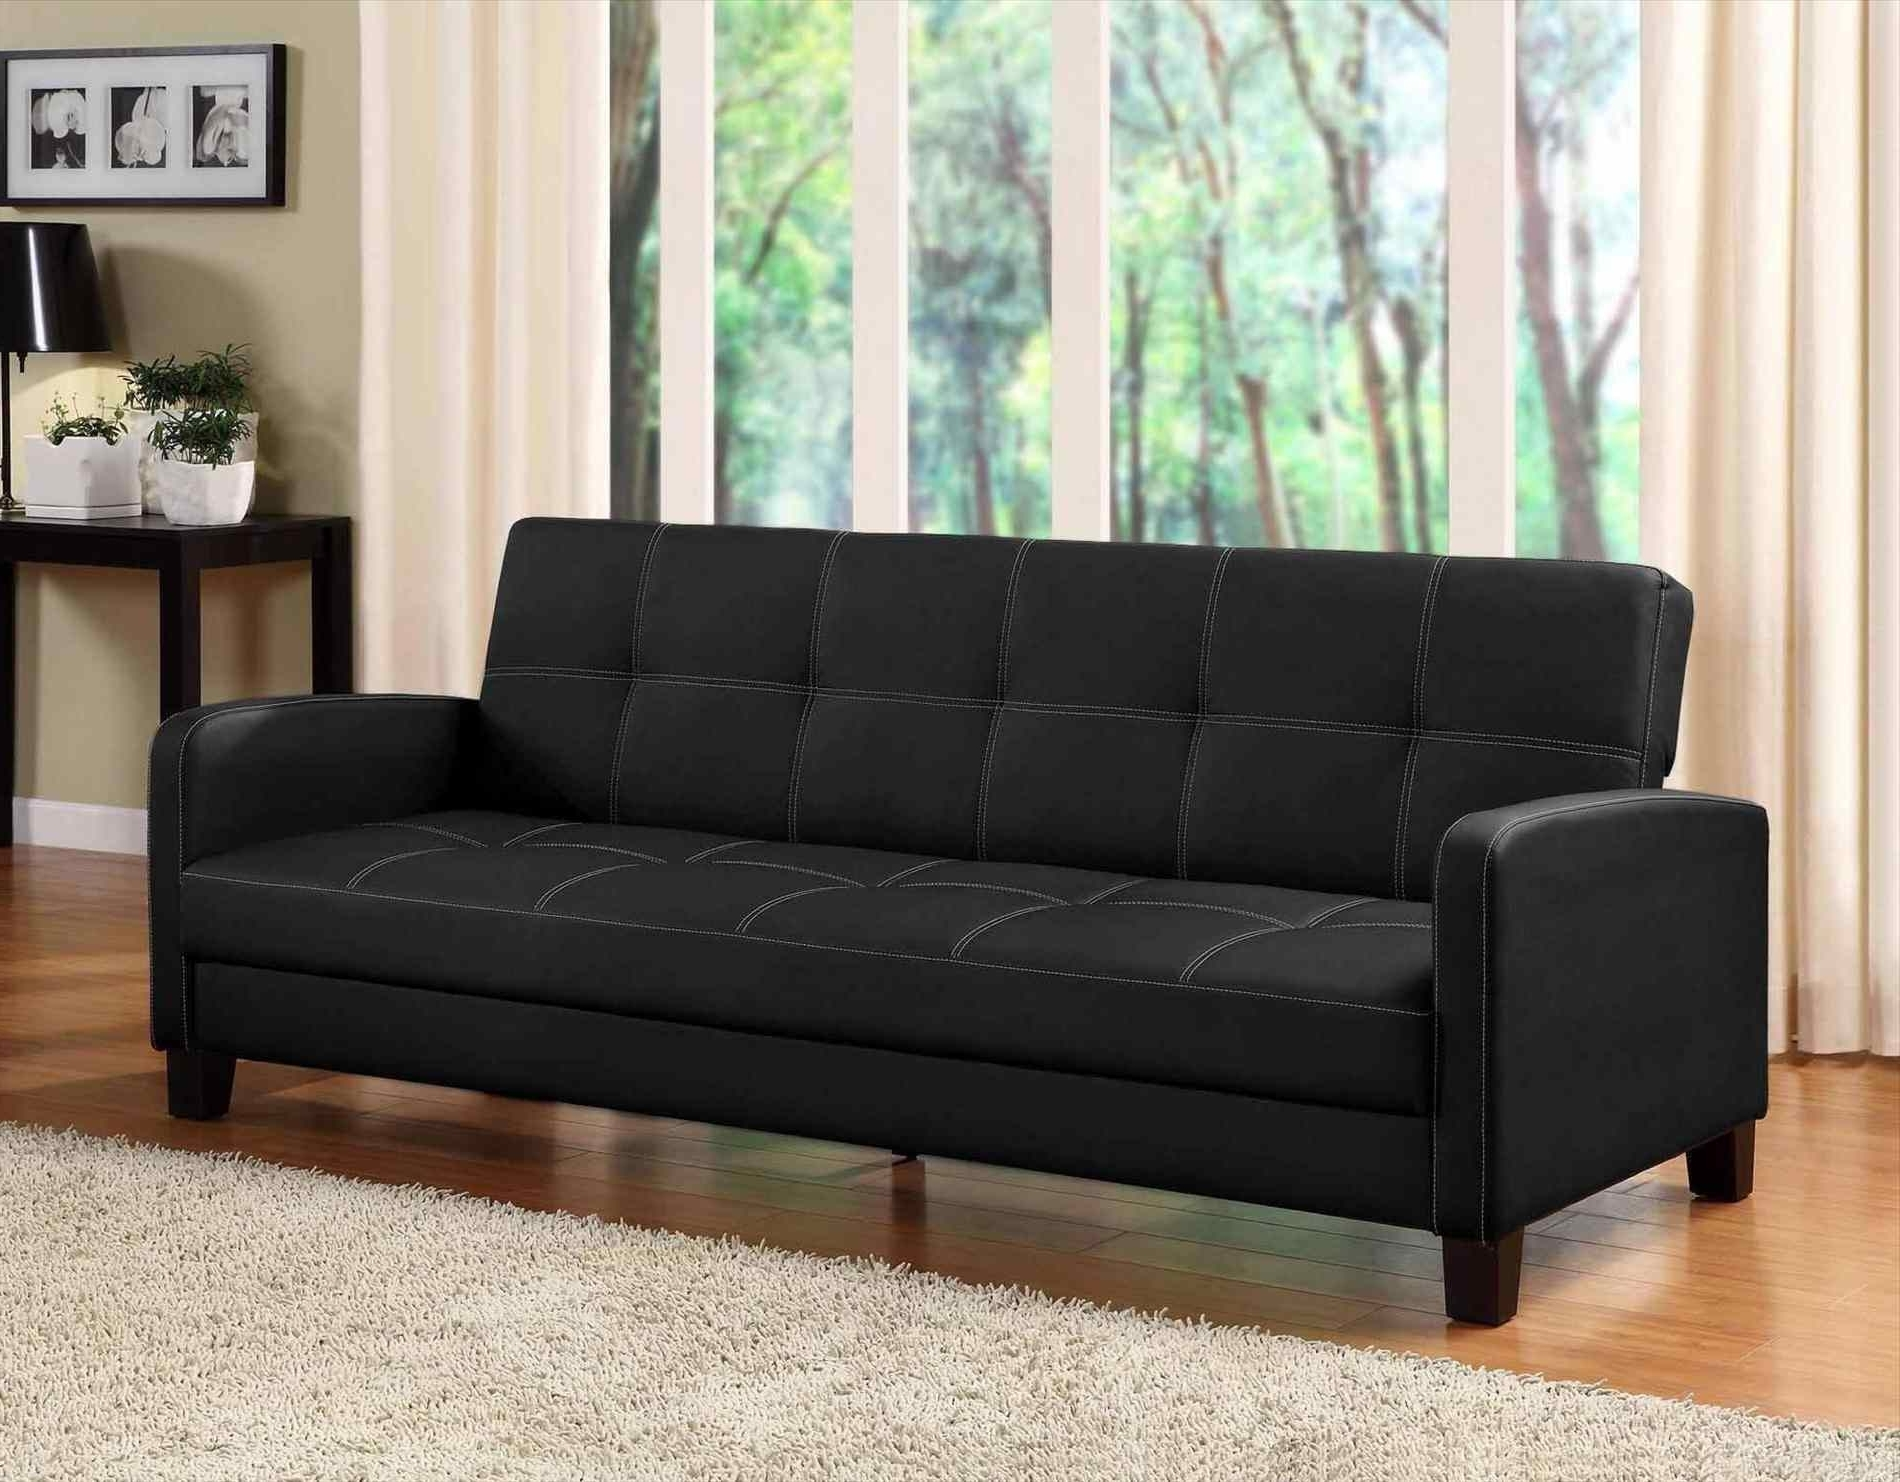 Showing Photos Of Kmart Sectional Sofas